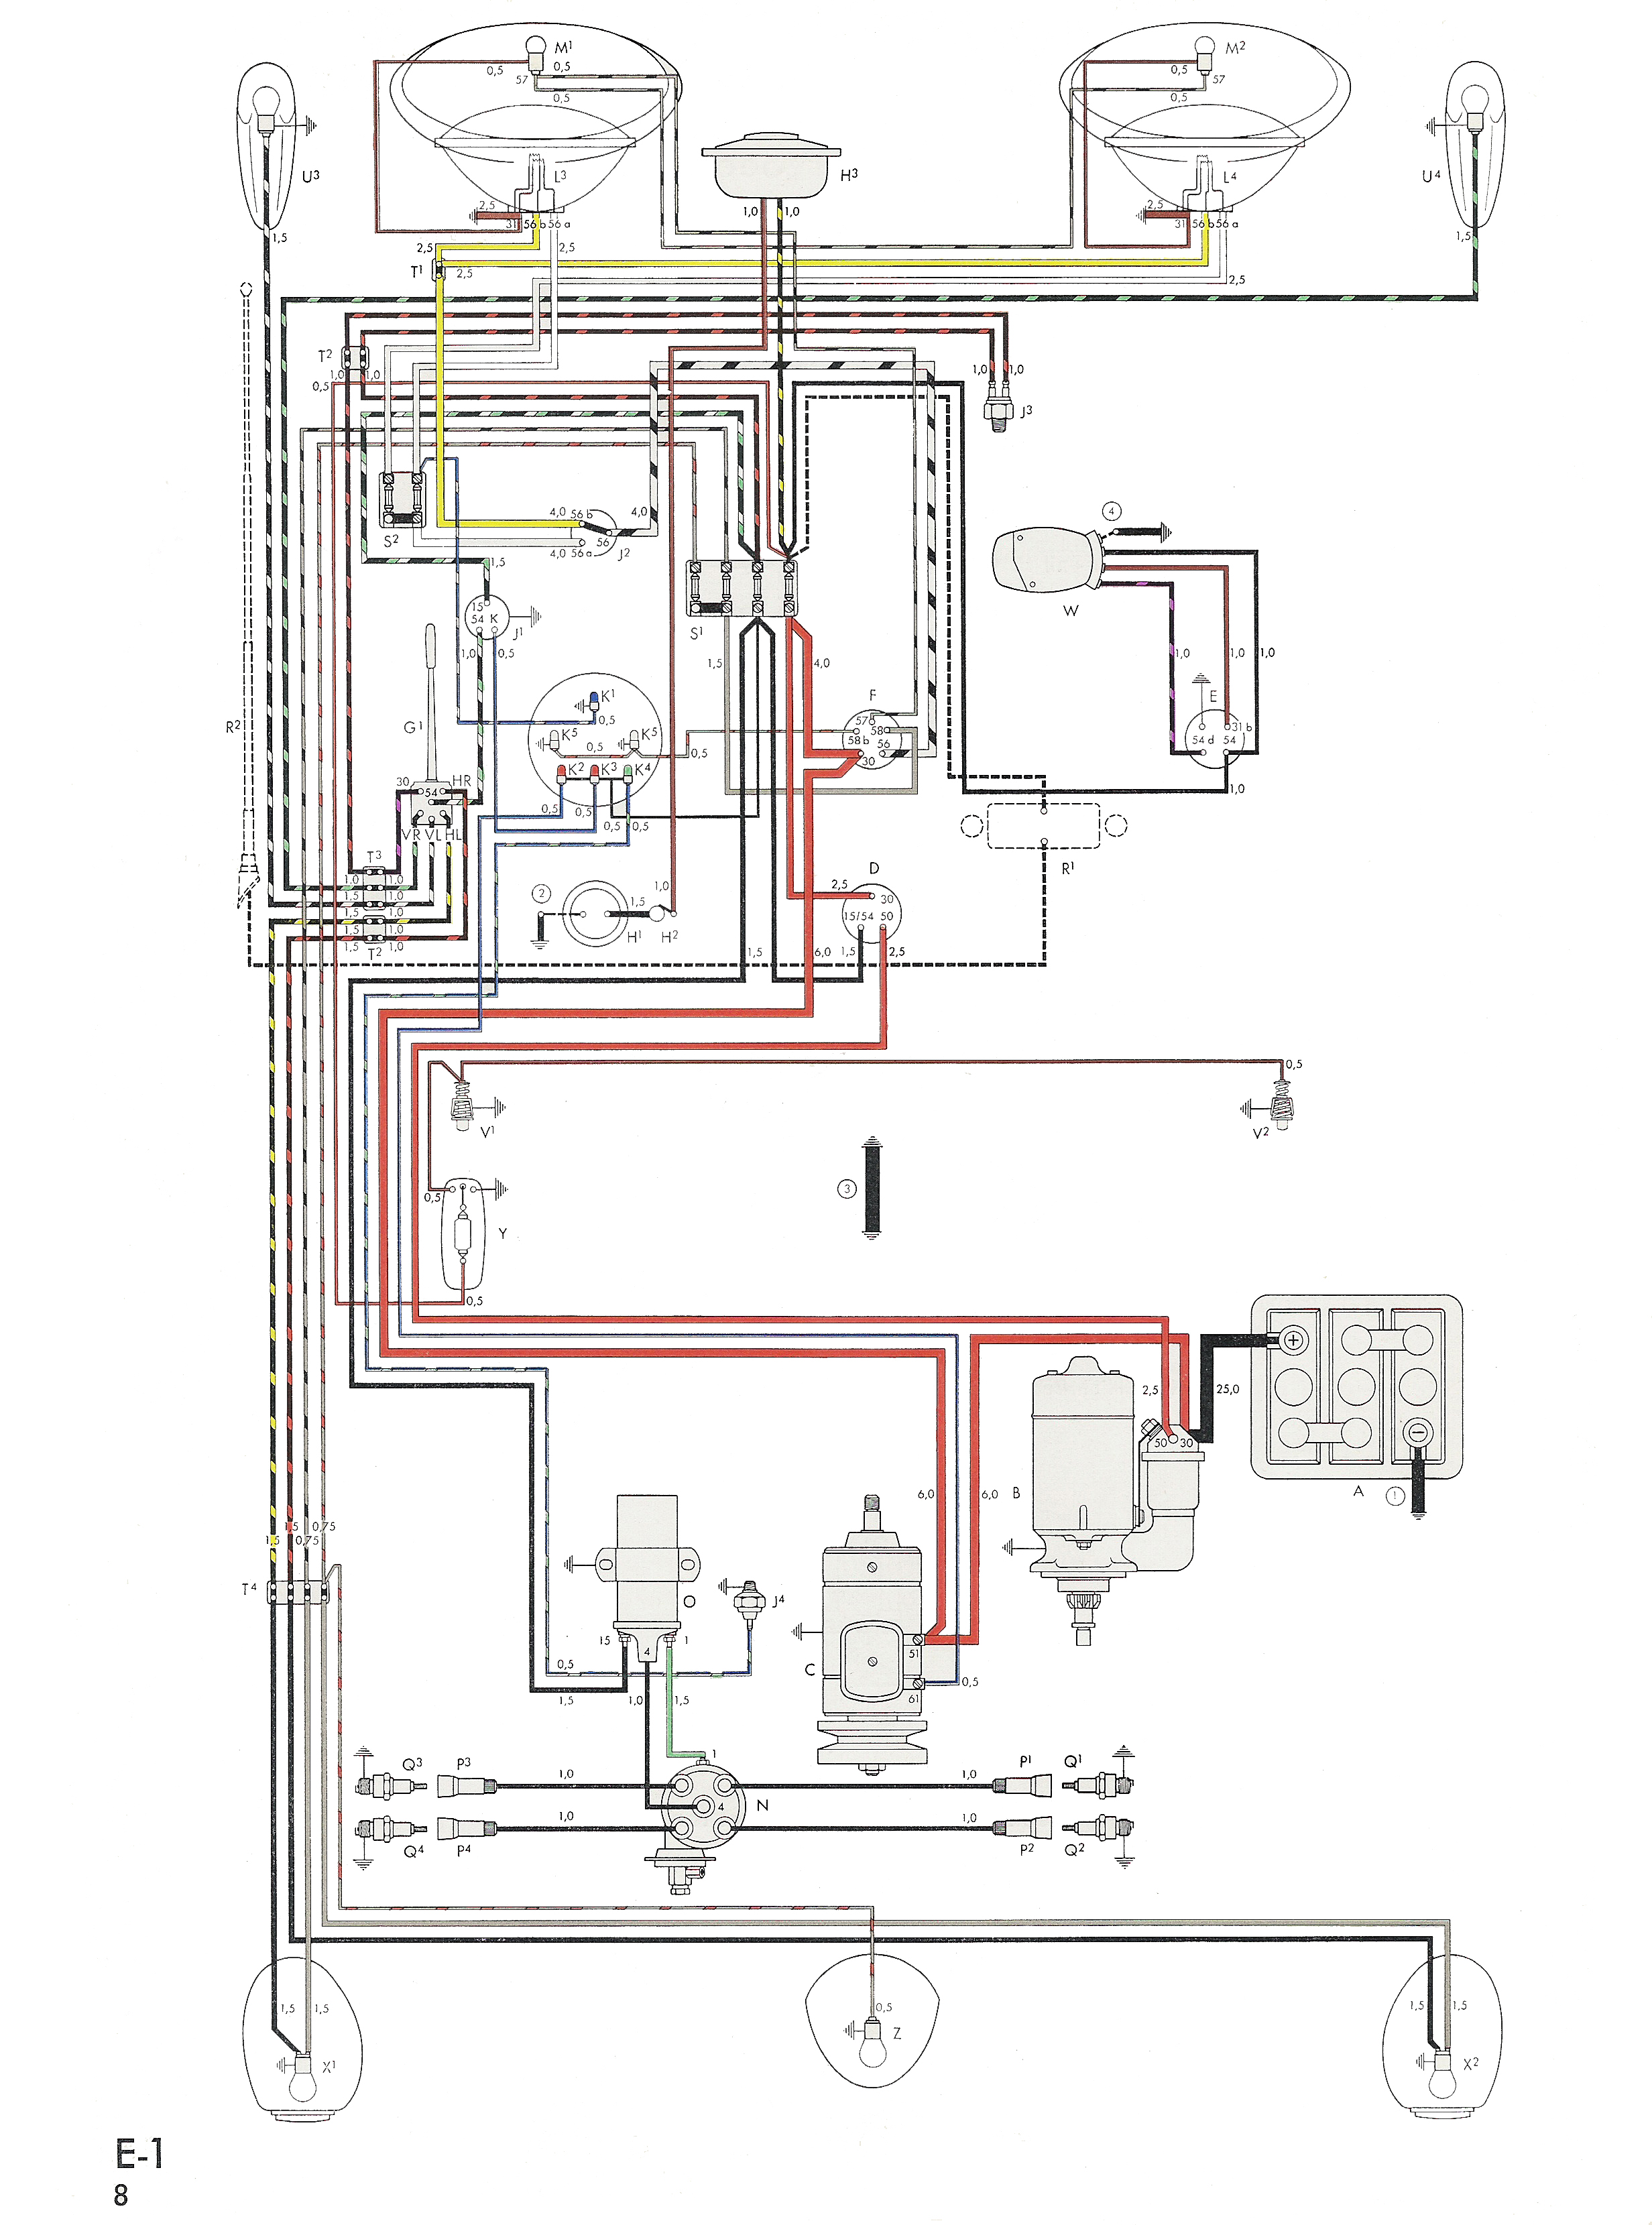 Wiring Diagram Cb Performance Custom Honda Cb750 1972 Volkswagen Beetle Schematic Diagrams Rh Ogmconsulting Co 1975 360 Radio